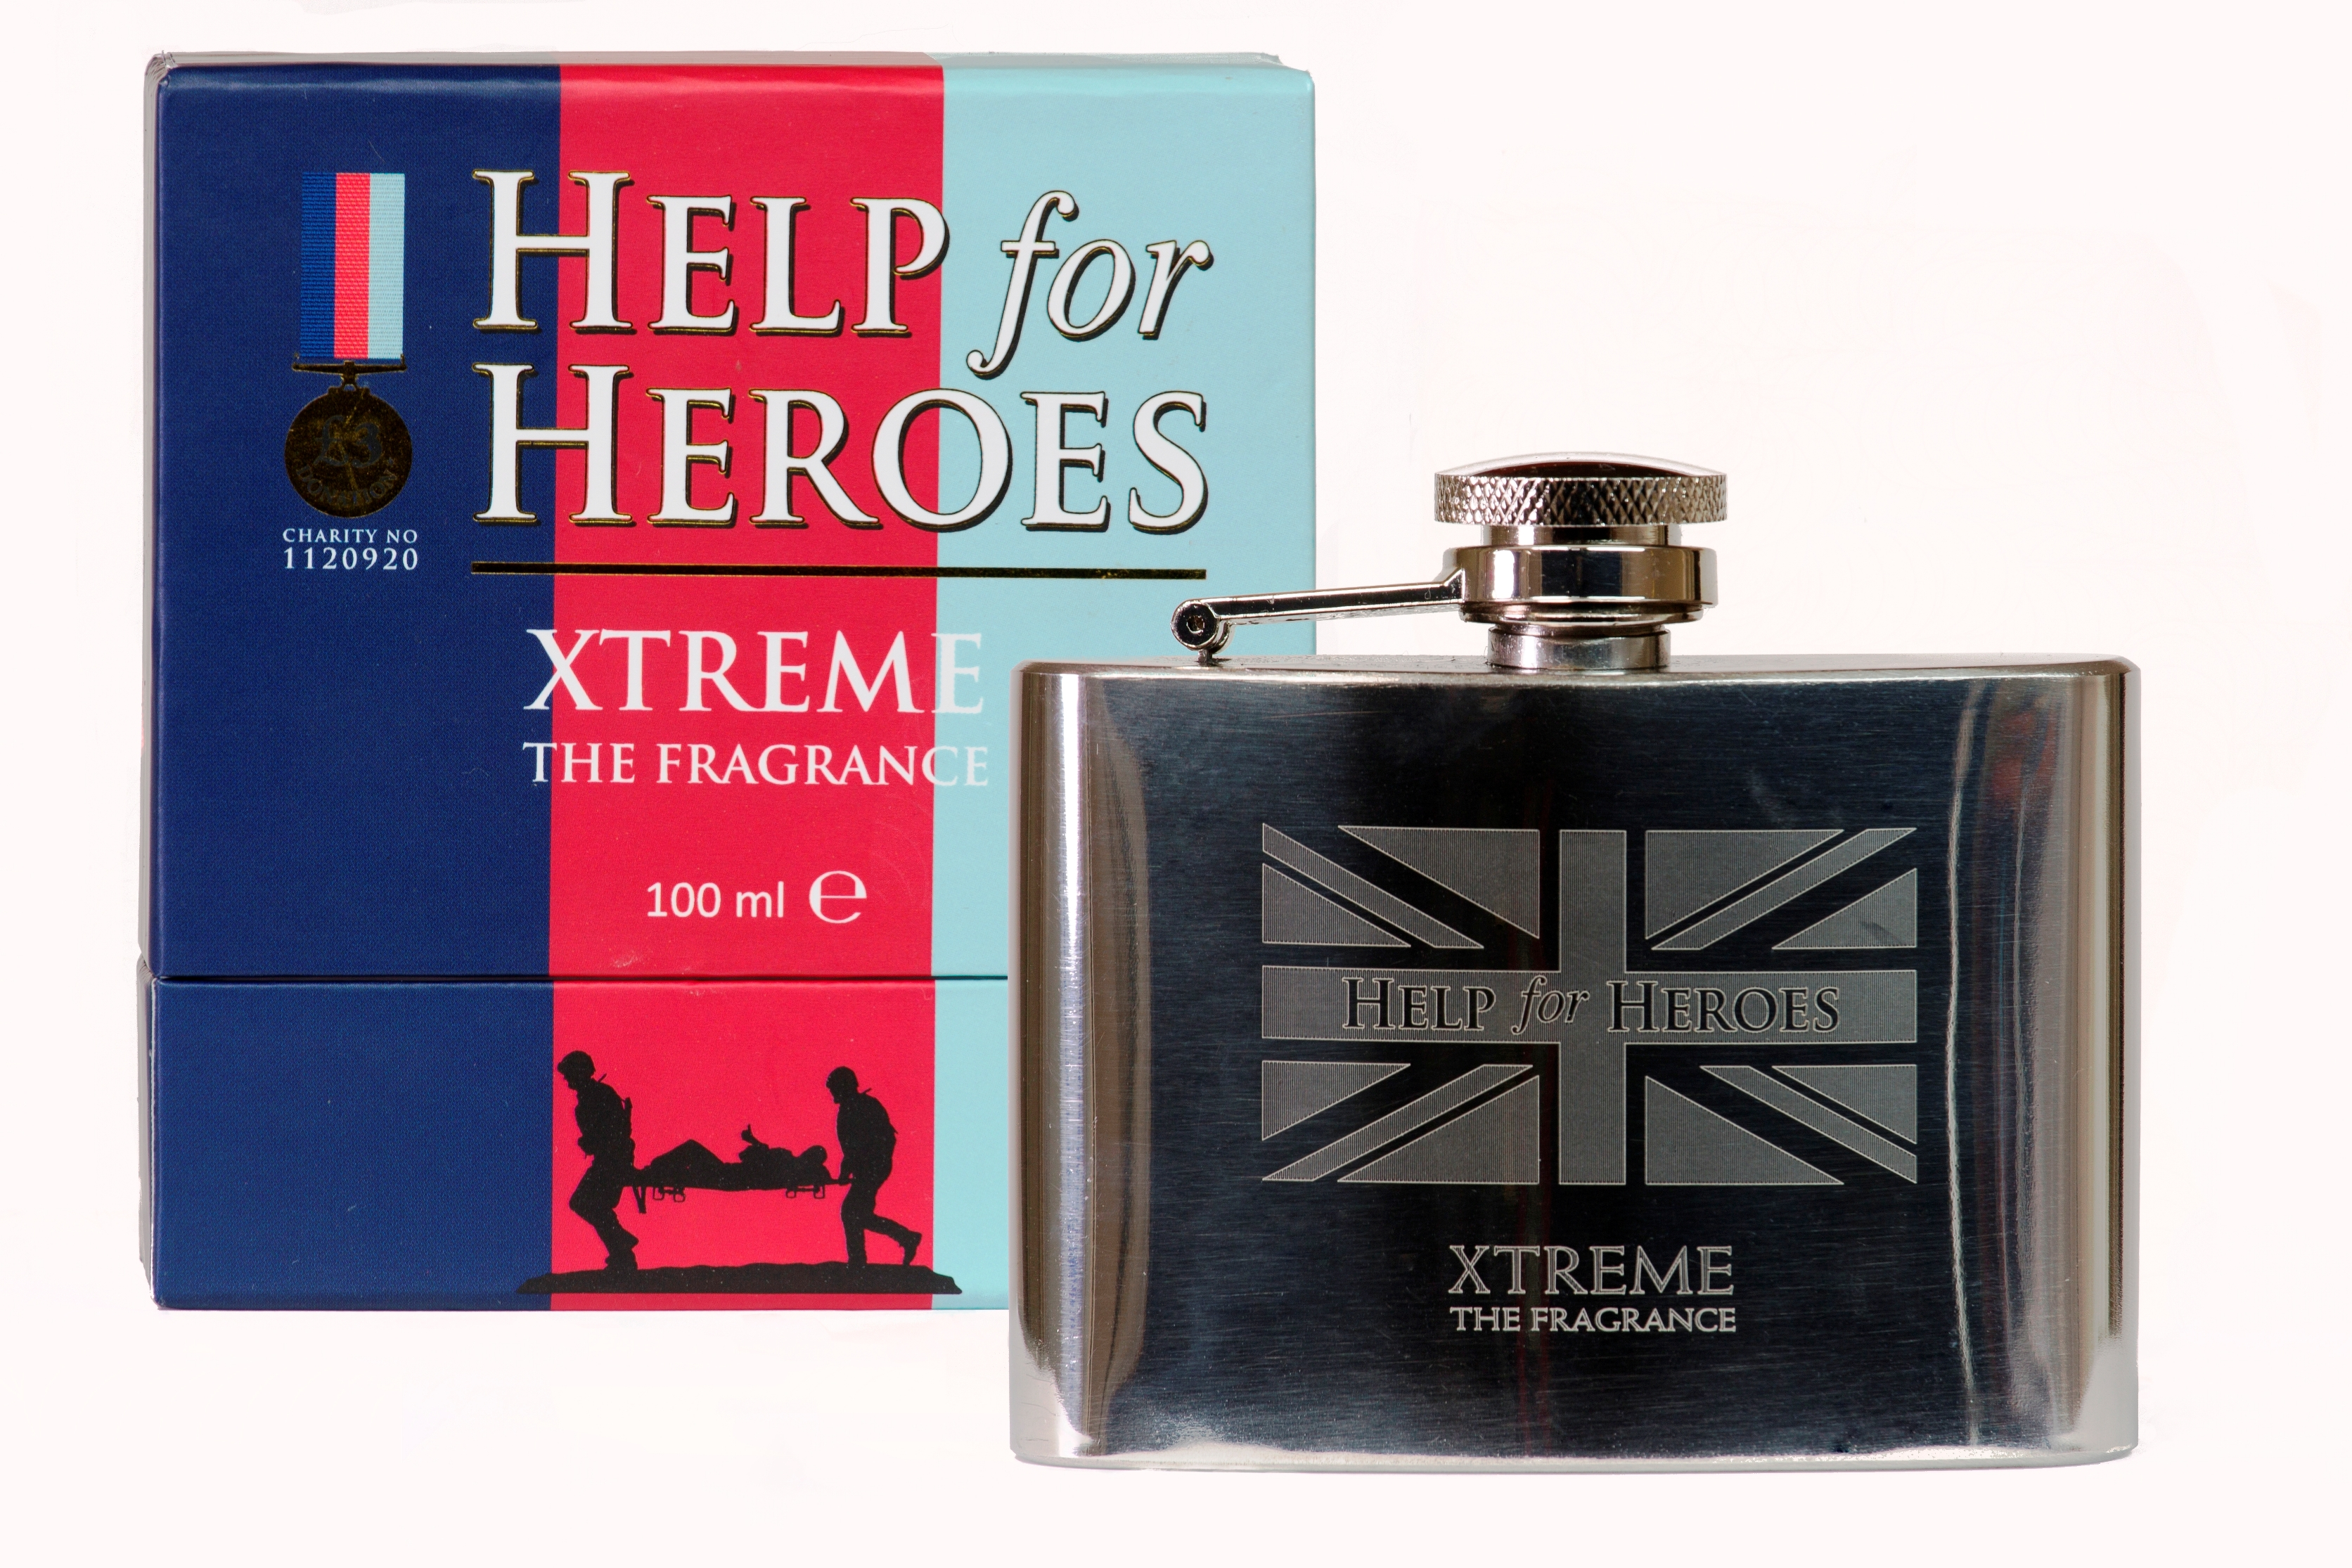 Help for Heroes Xtreme